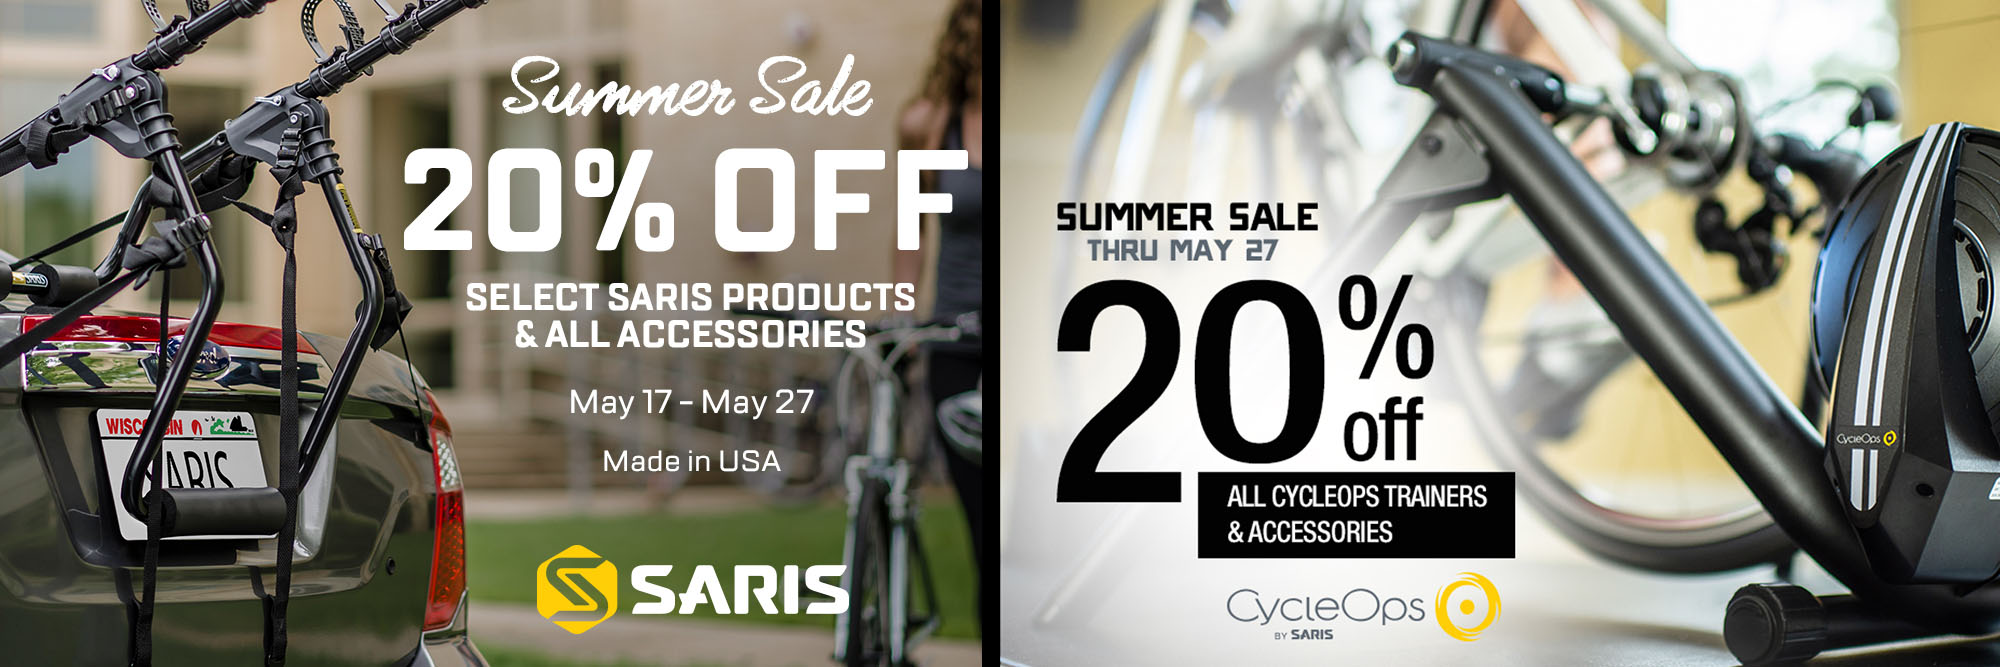 Save on Saris and CycleOps